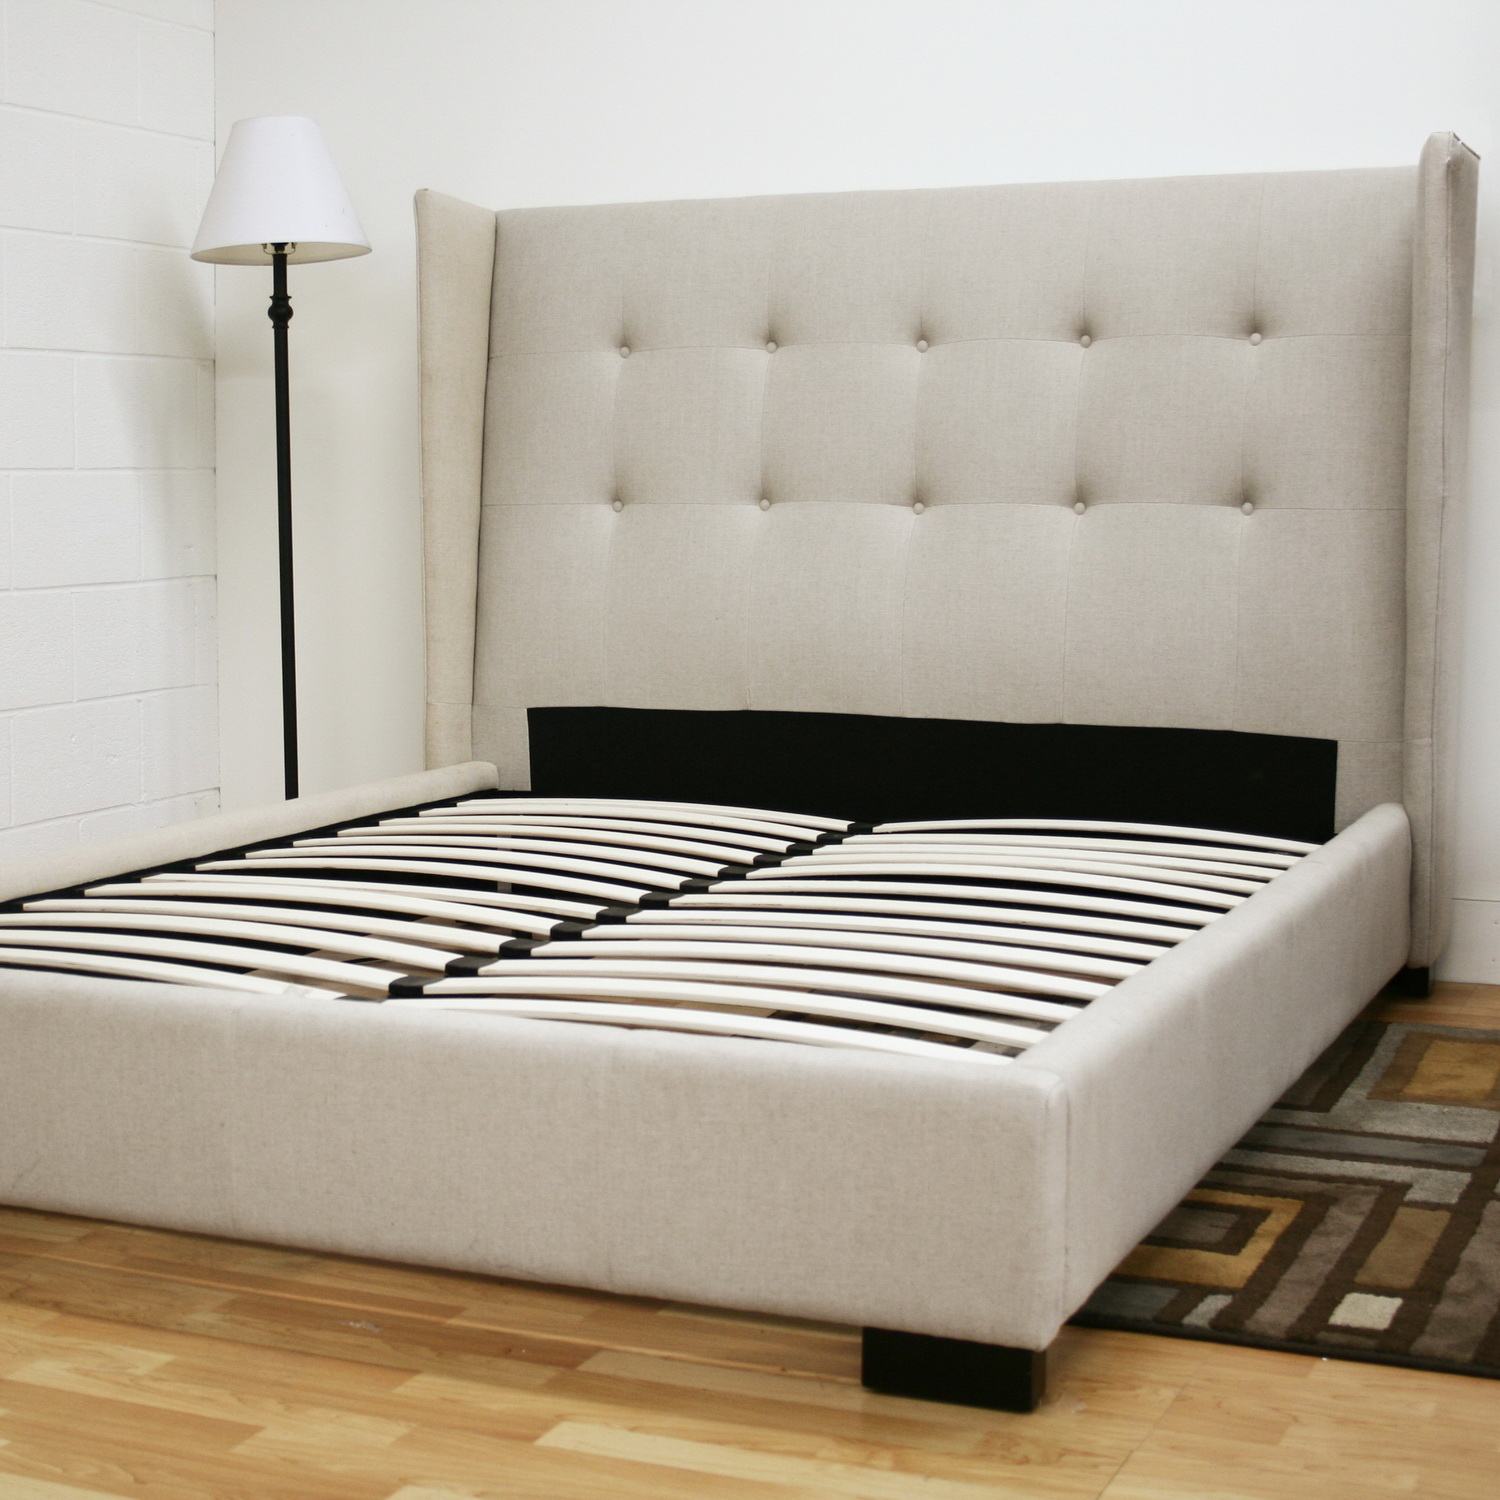 How To Build A Cheap Platform Bed Frame | Search Results | DIY ...